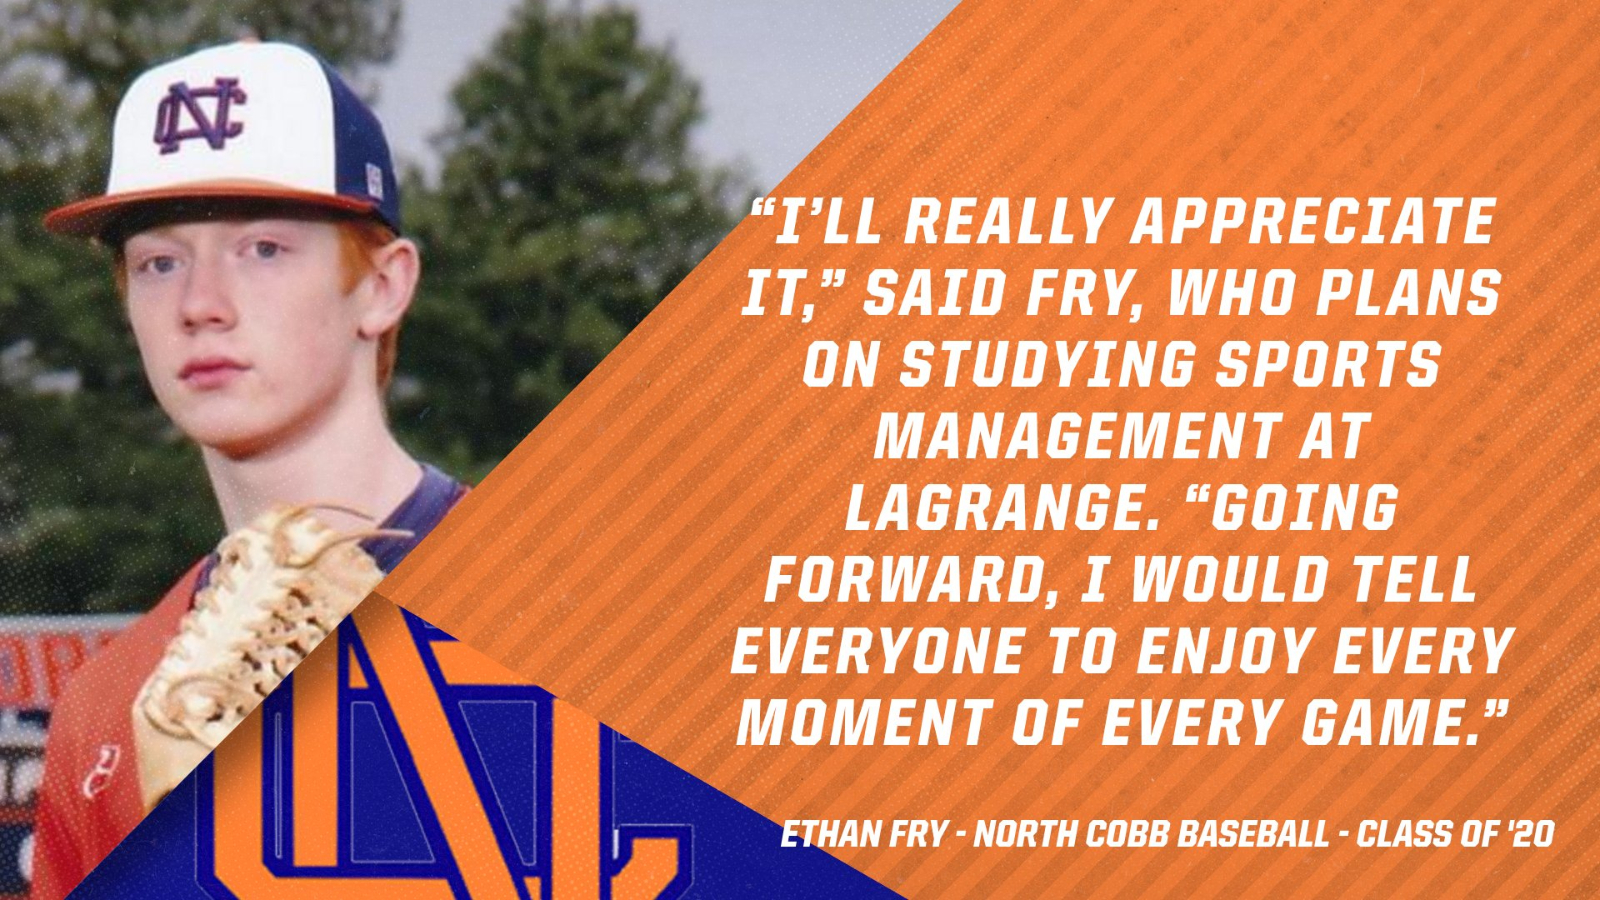 Senior Night Article – Ethan Fry